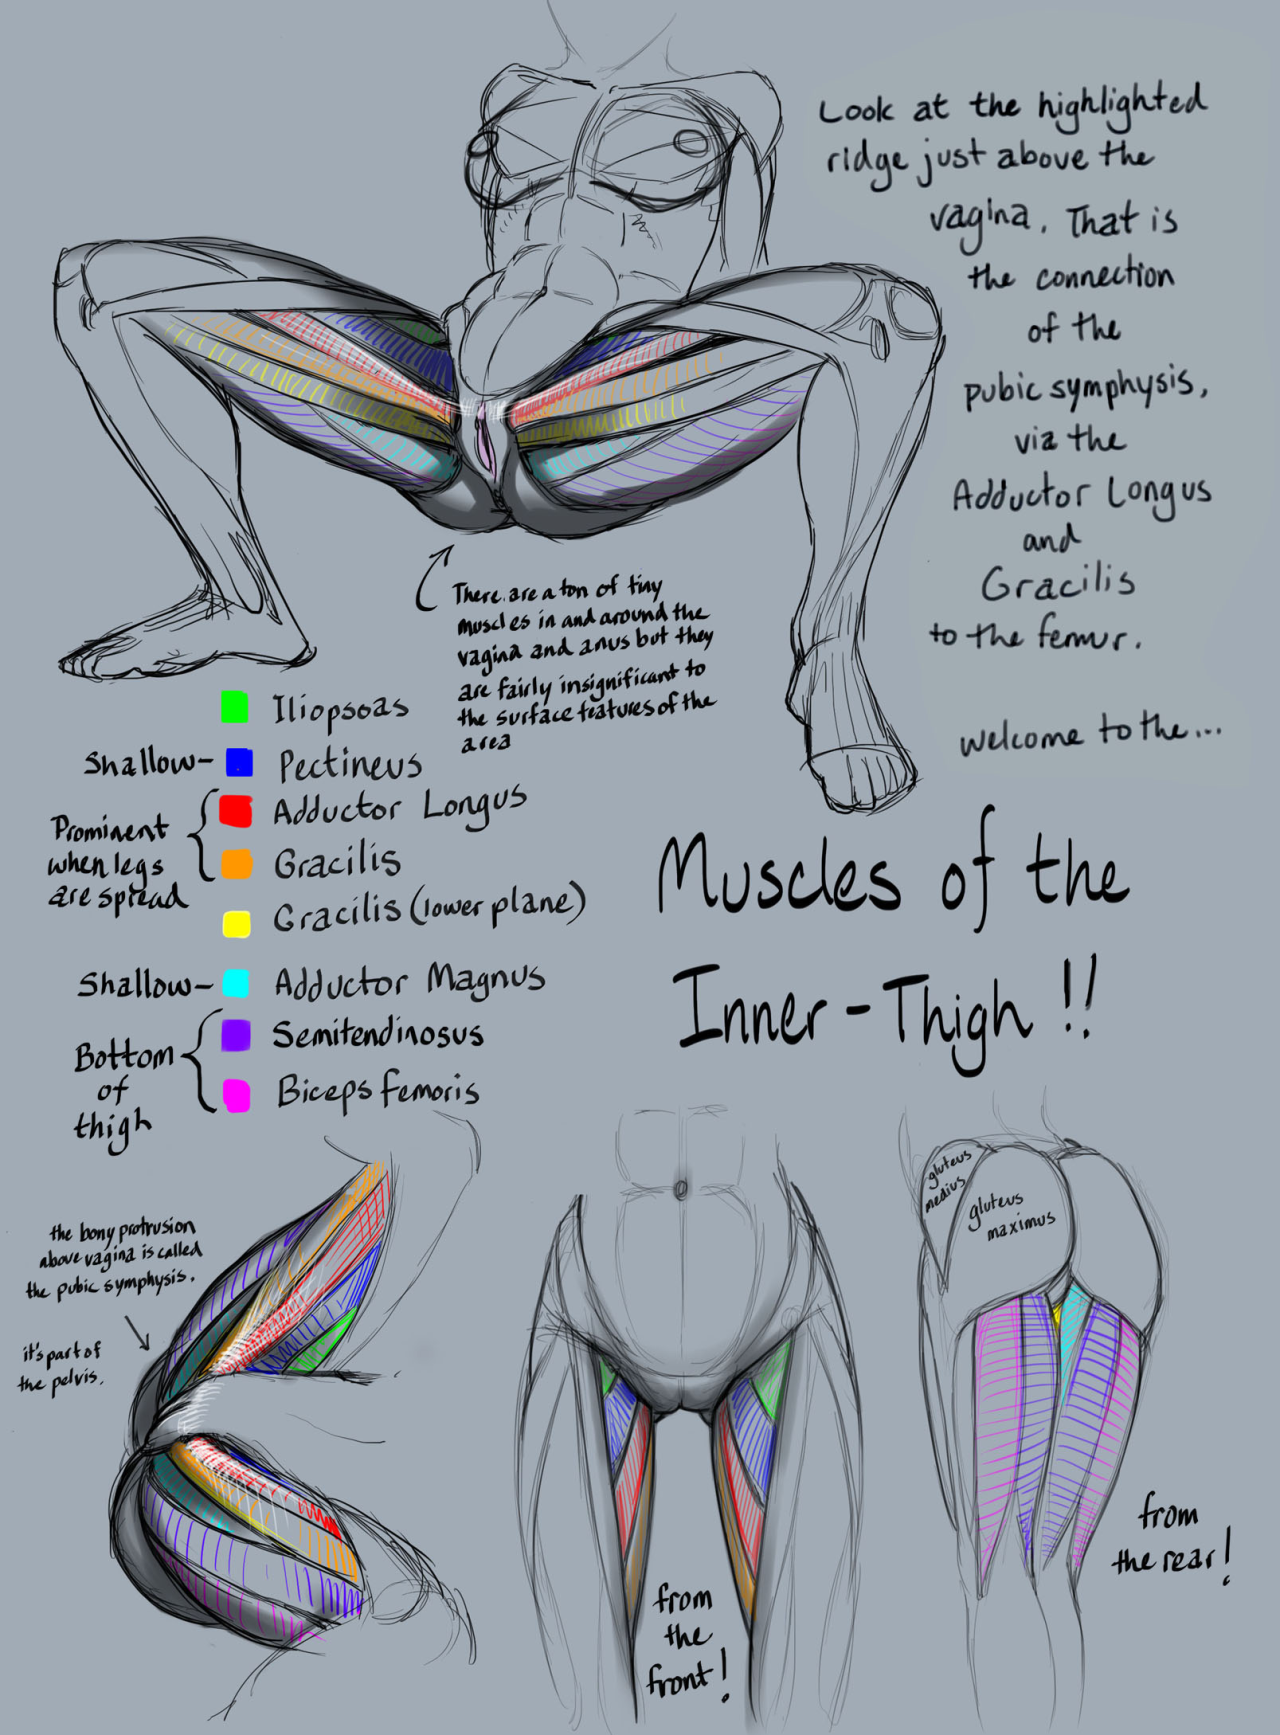 Pin by Dogz on Anatomy Reference | Pinterest | Anatomy, Art ...